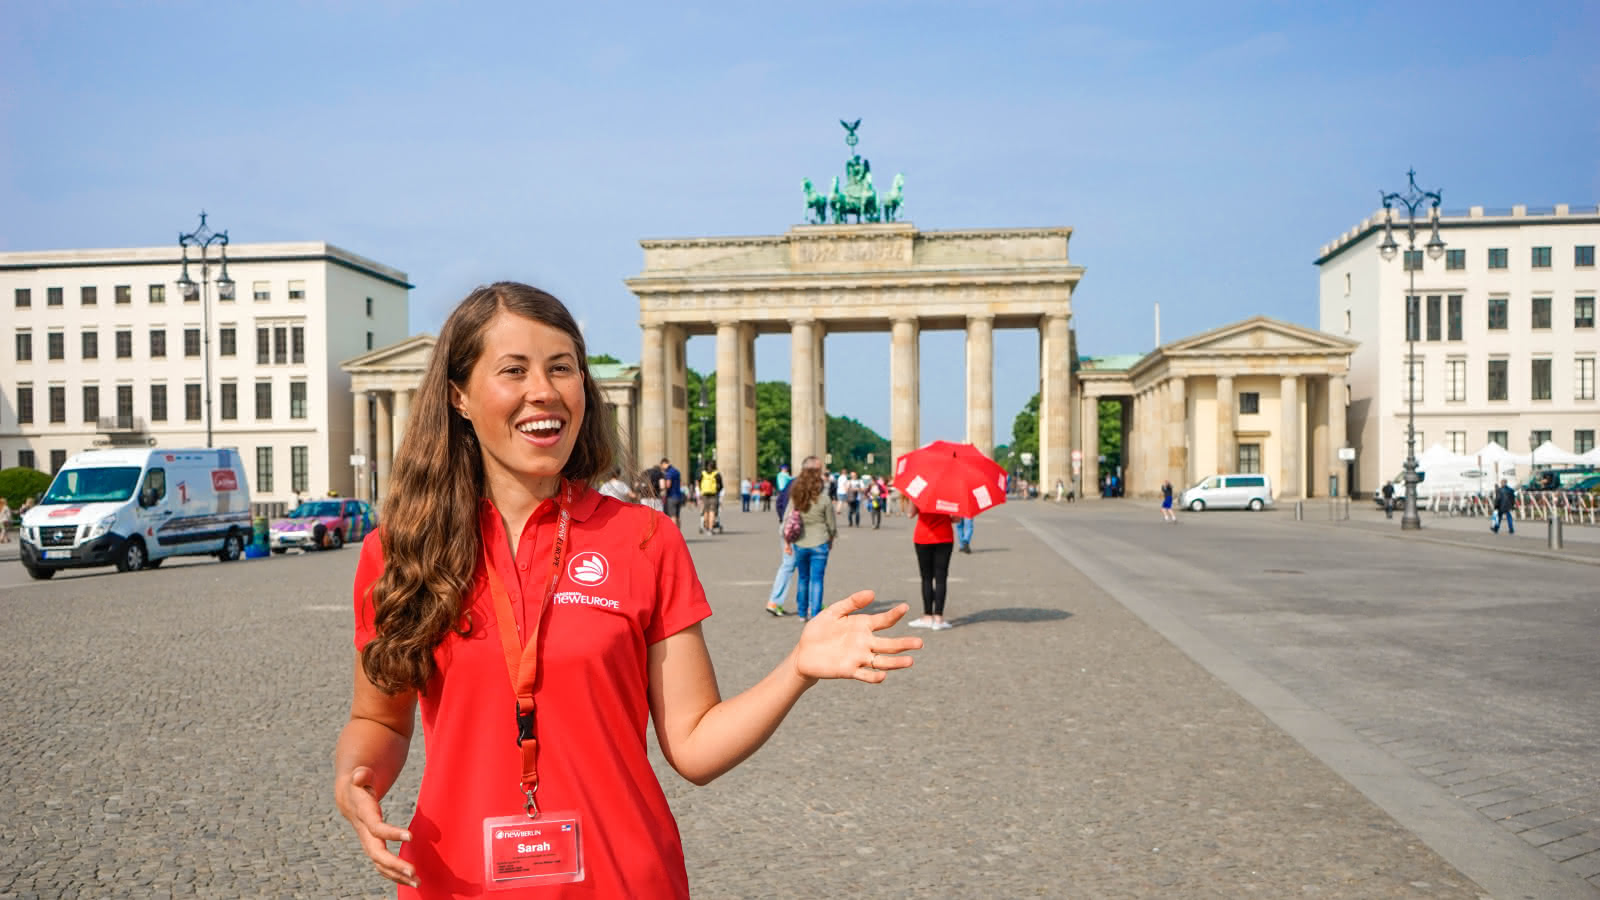 Berlin Local Guide at the Brandenburg Gate